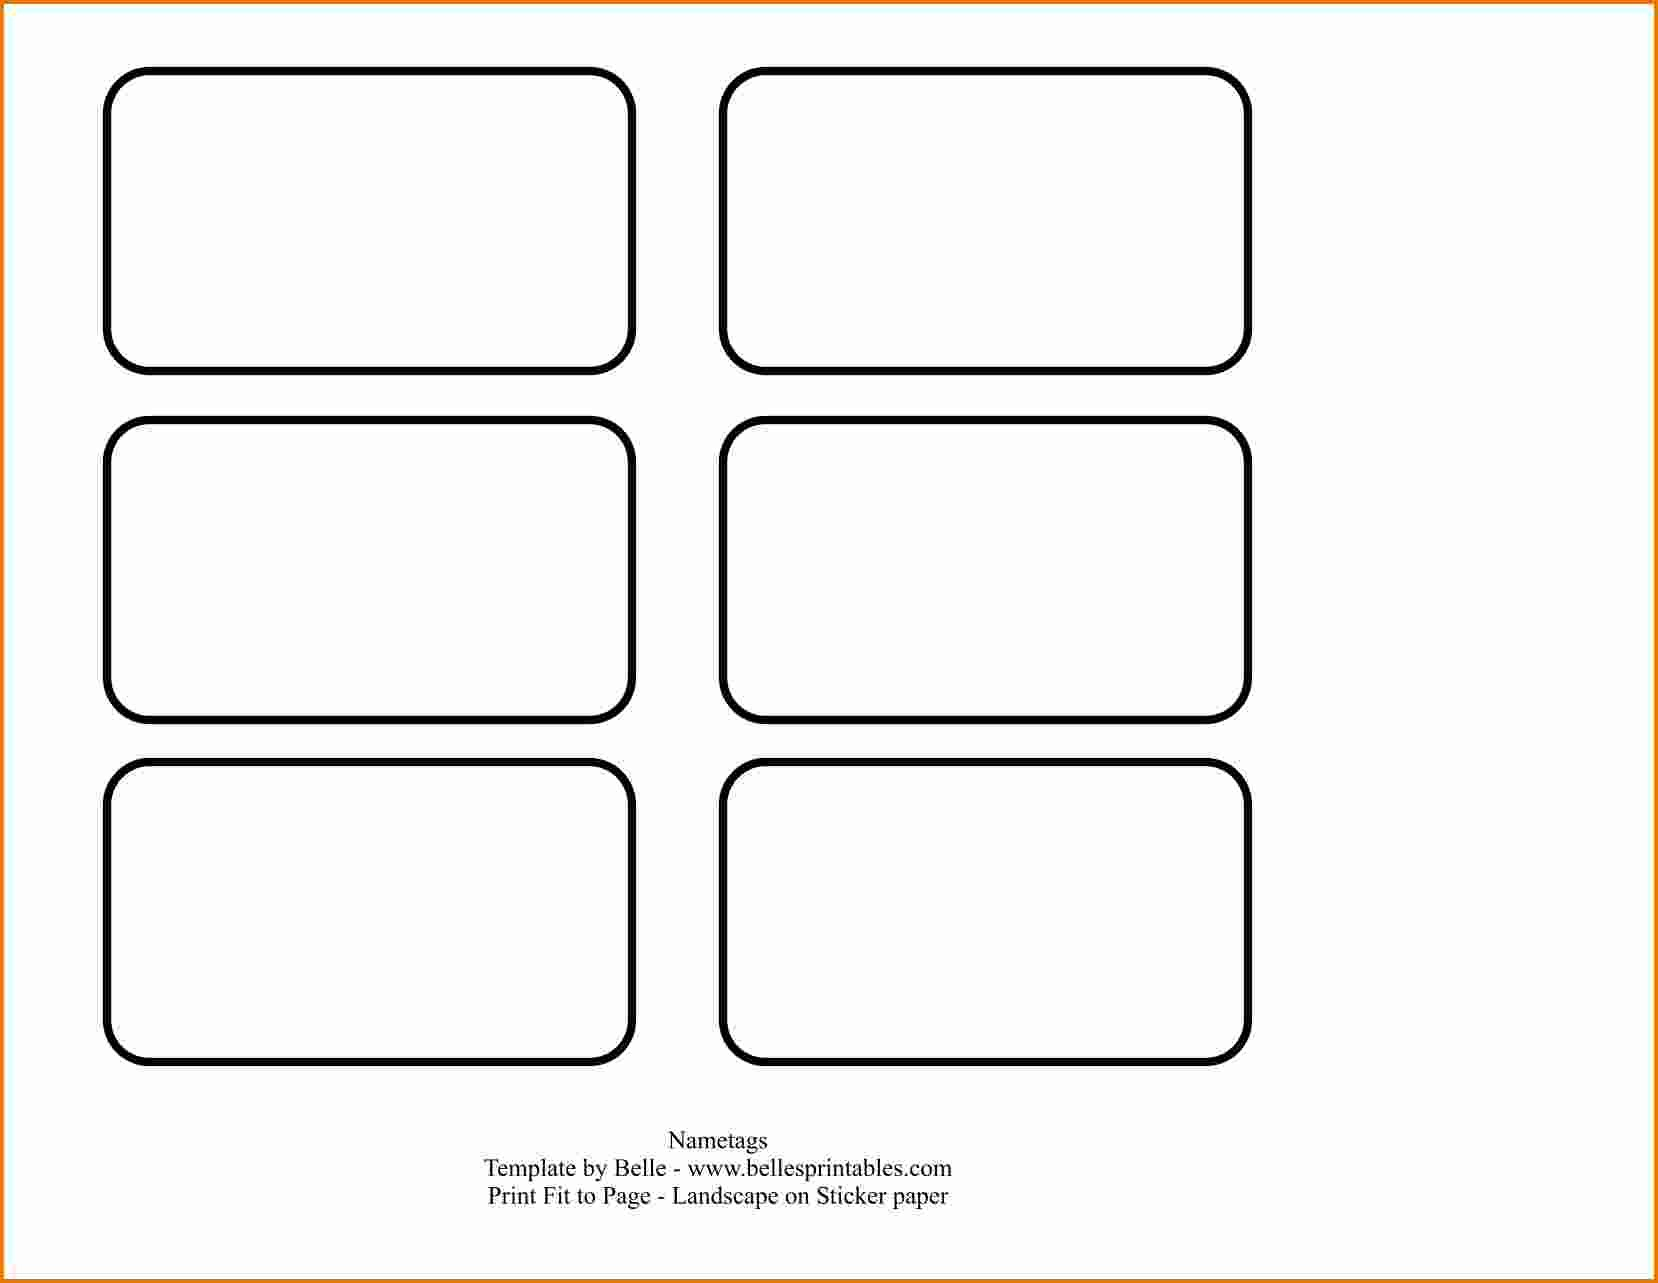 Free Online Label Templates Template Ideas Photo Printable Throughout Free Online Label Templates